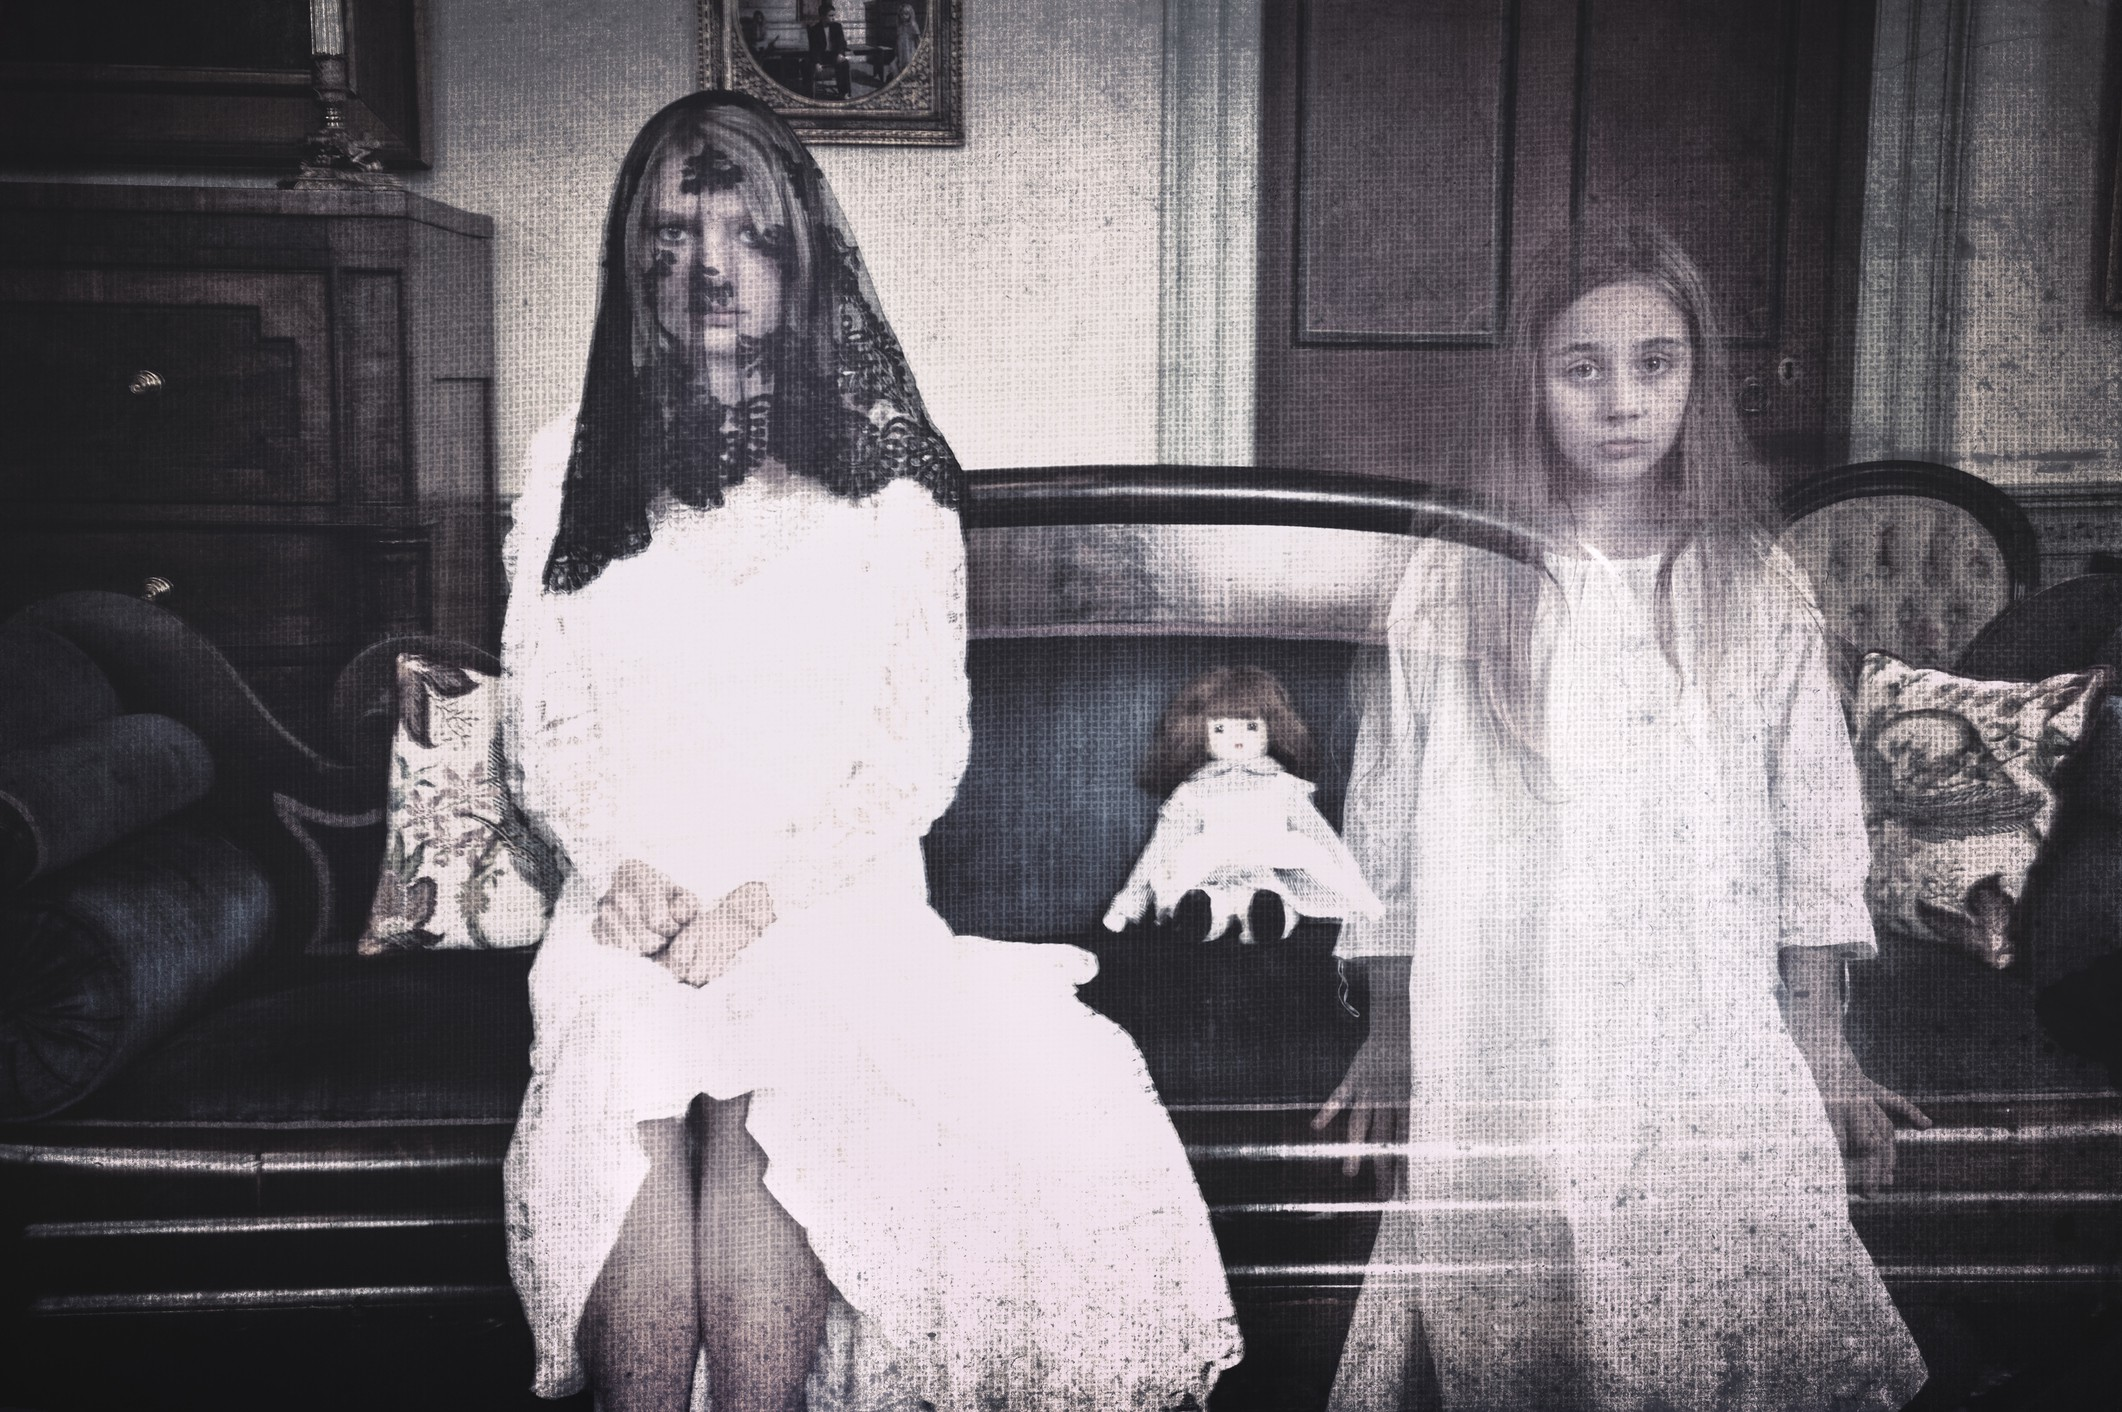 A black and white photo of two ghostly girls sitting on an antique couch with a creepy doll next to them.